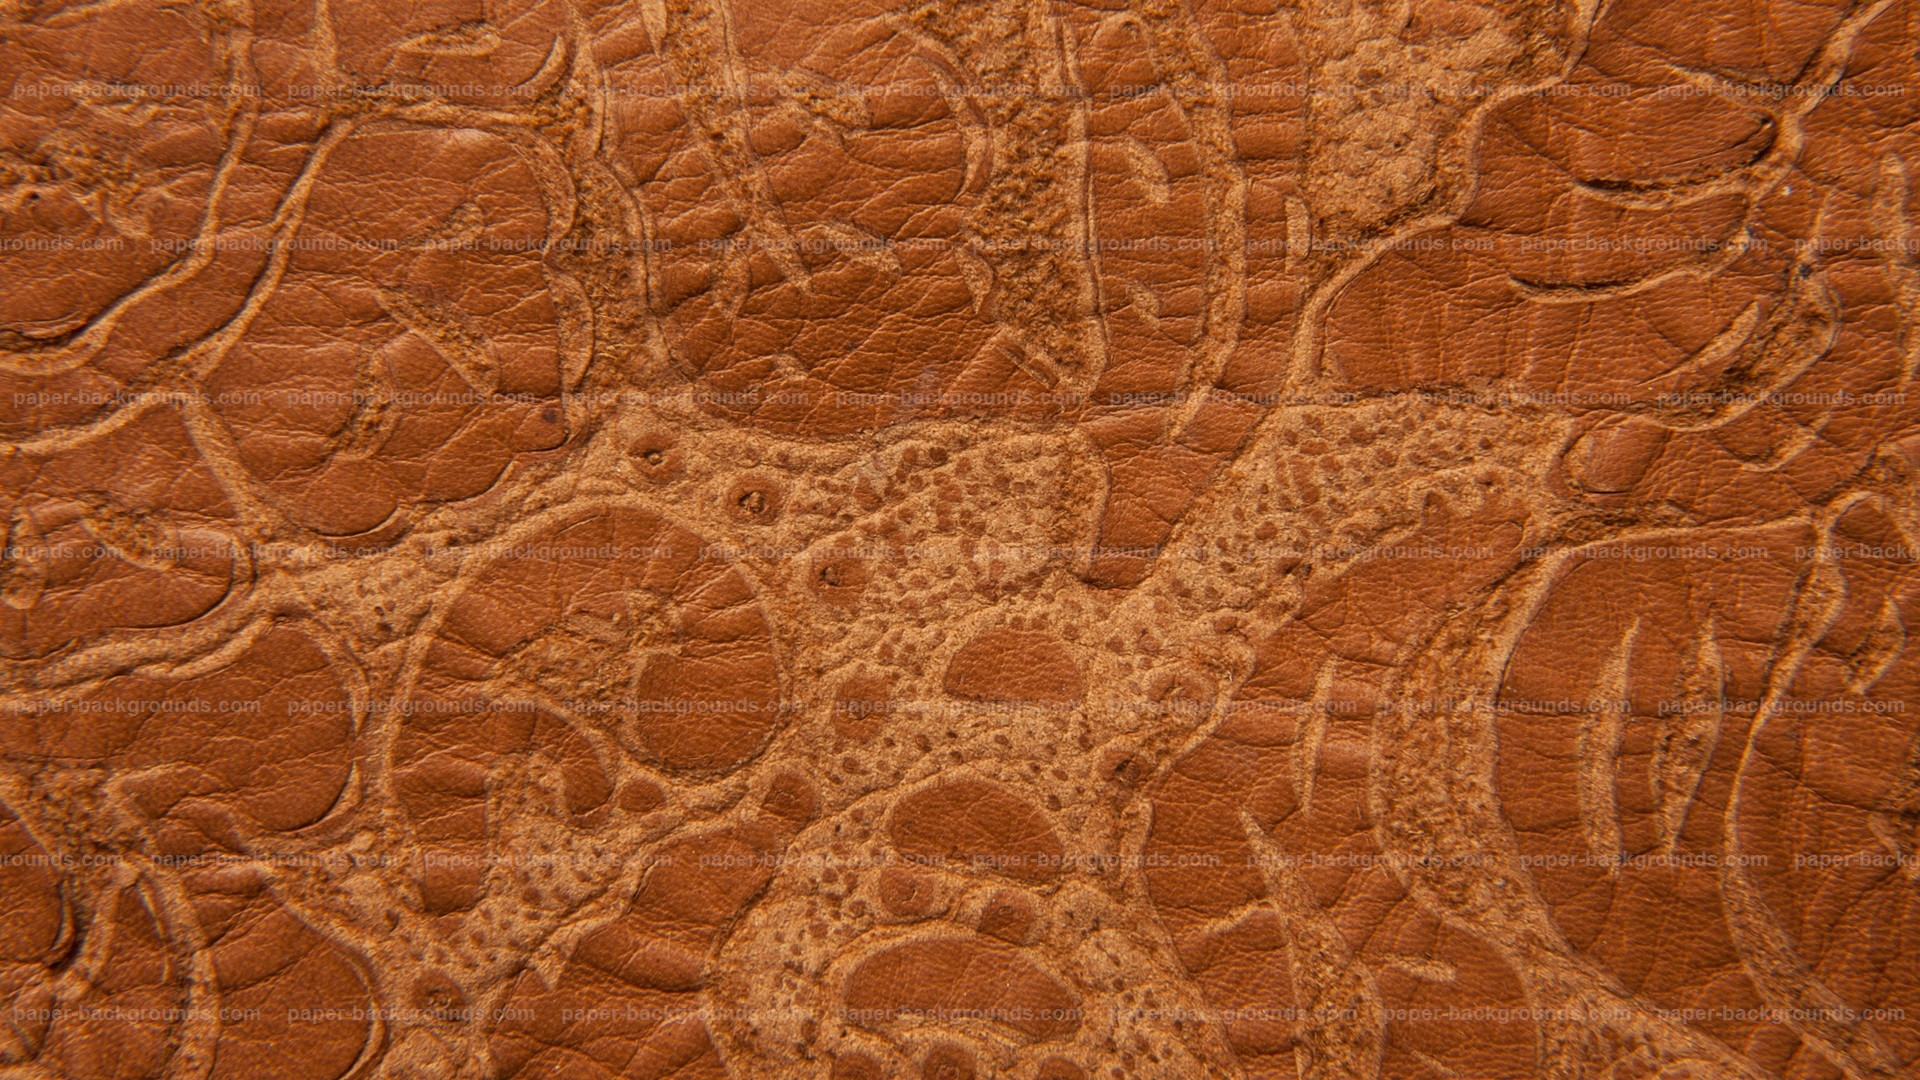 1920x1080 Brown Grunge Embossed Leather Texture HD 1920 x 1080p